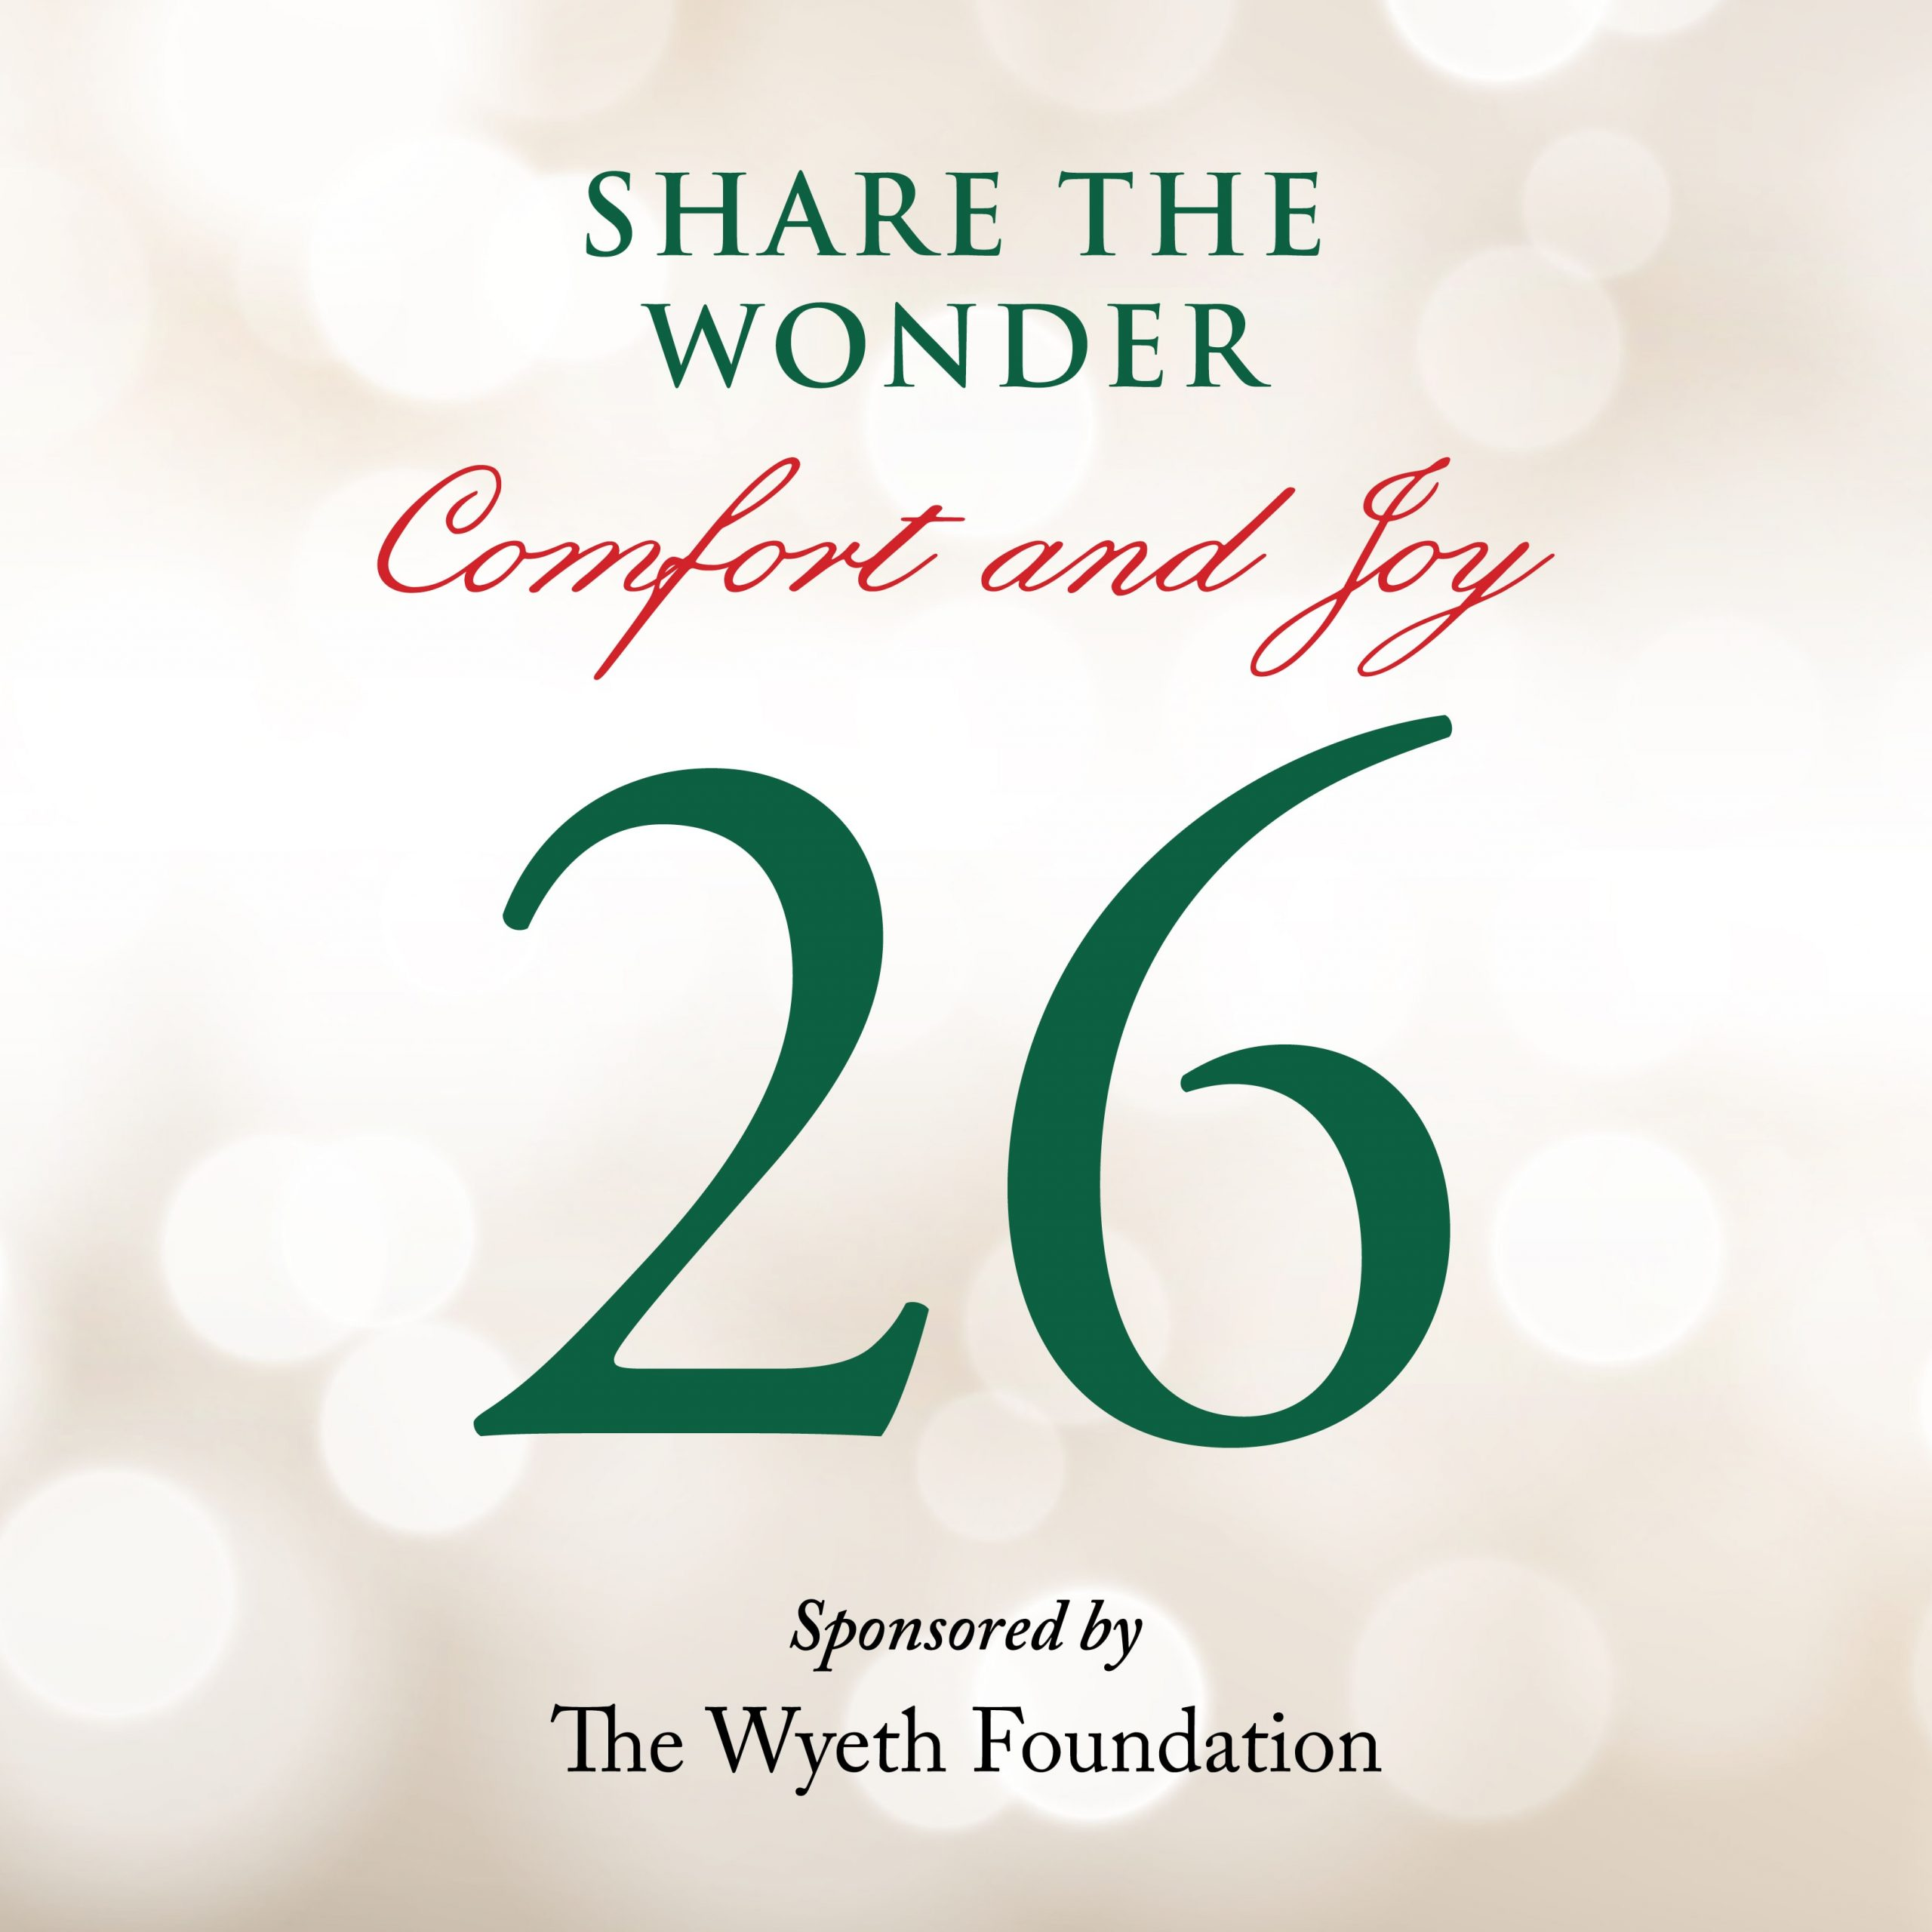 Day 26 of Share the Wonder: December 23